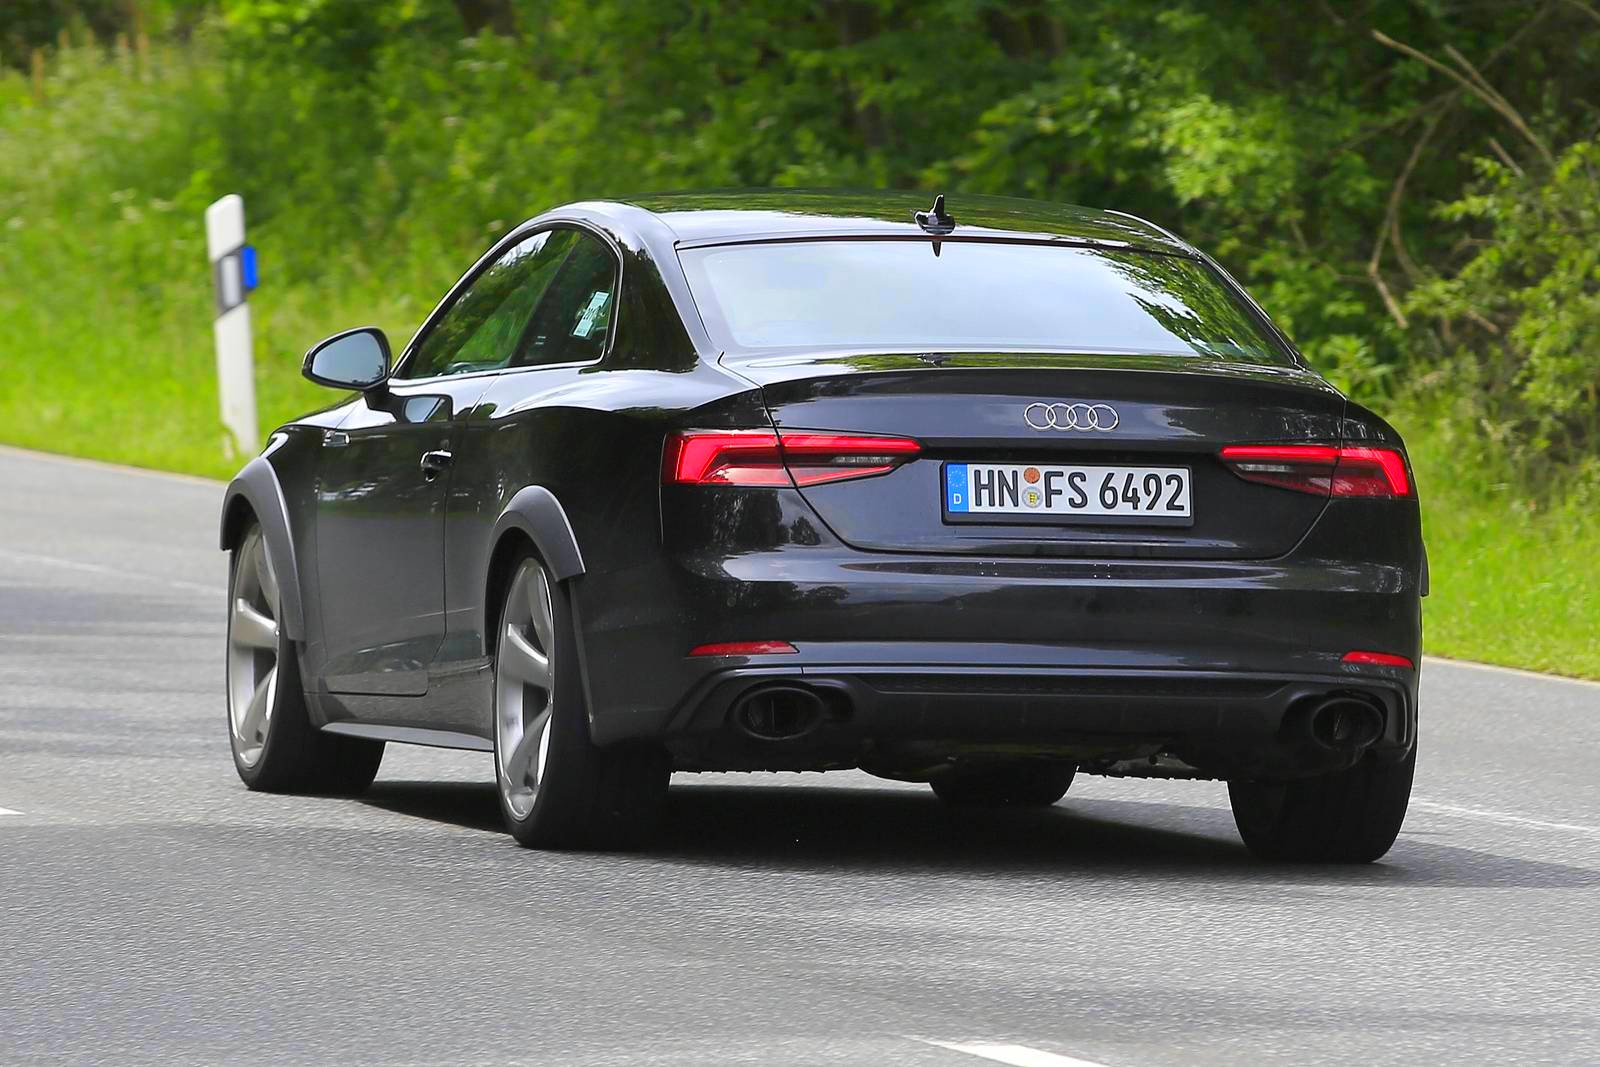 2018 Audi Rs5 Test Mule Spotted